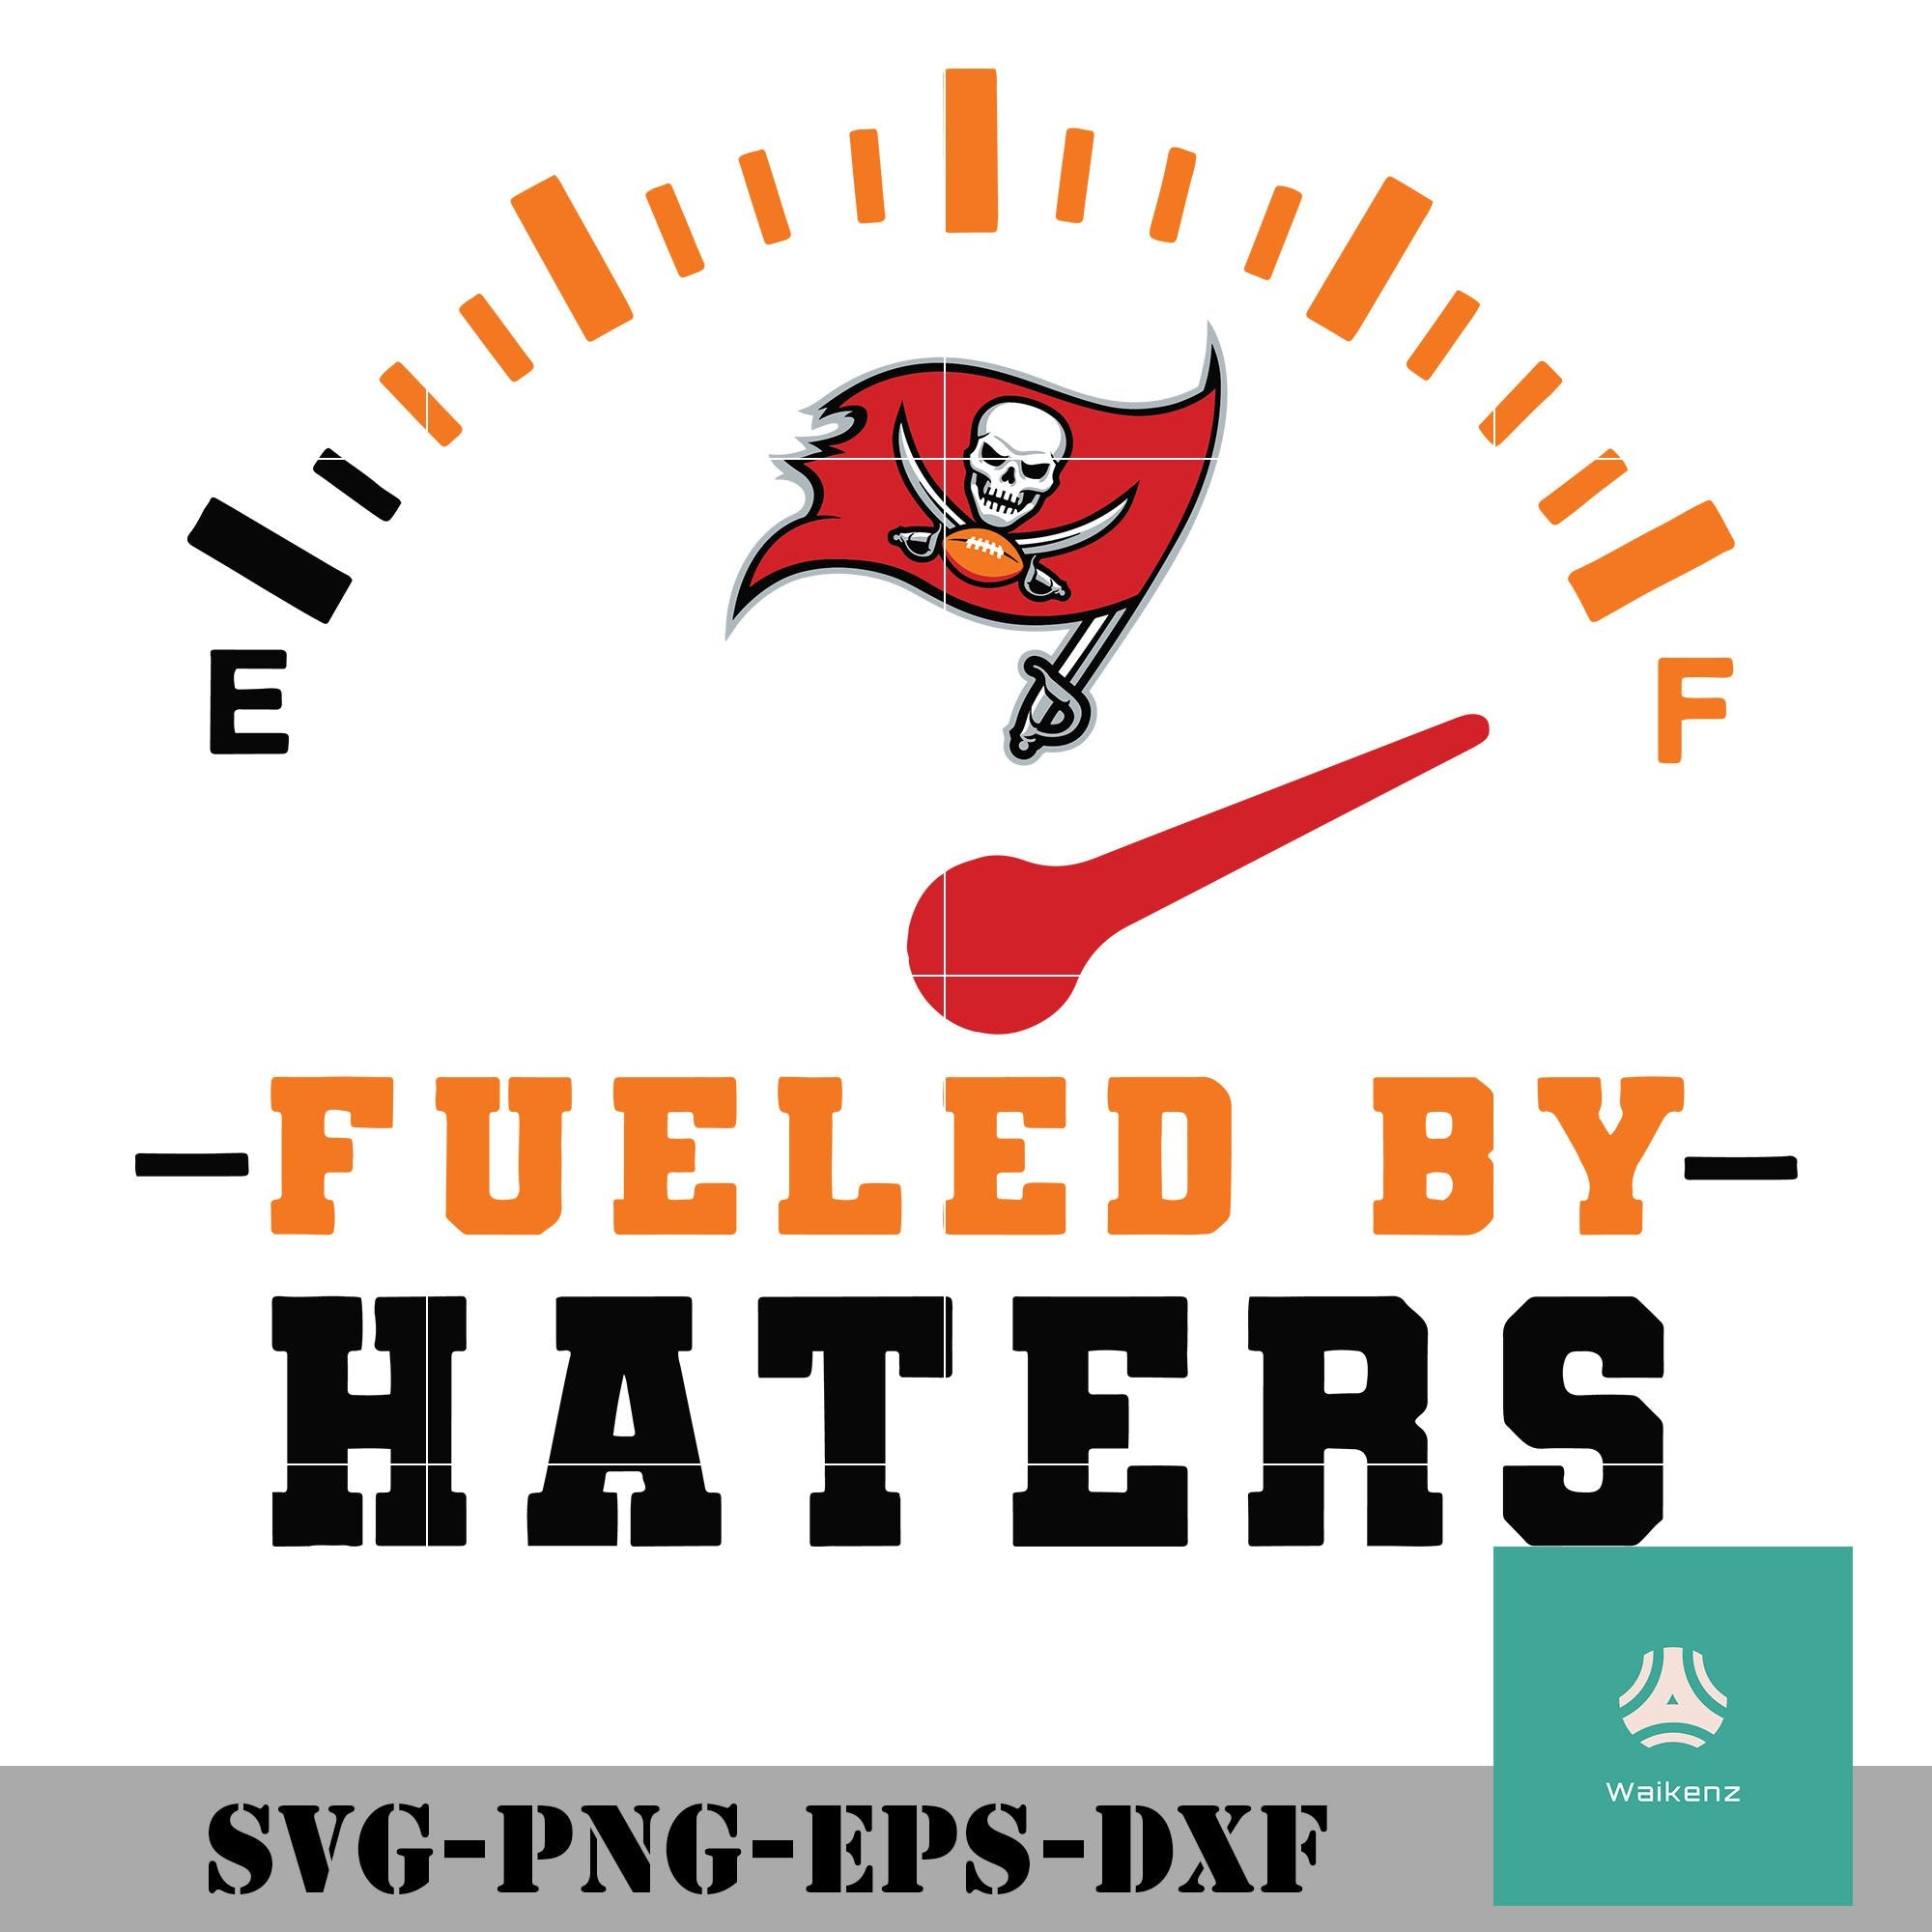 Tampa Bay Buccaneers Fueled By Haters Svg Tampa Bay Buccaneers Svg P Waikenz